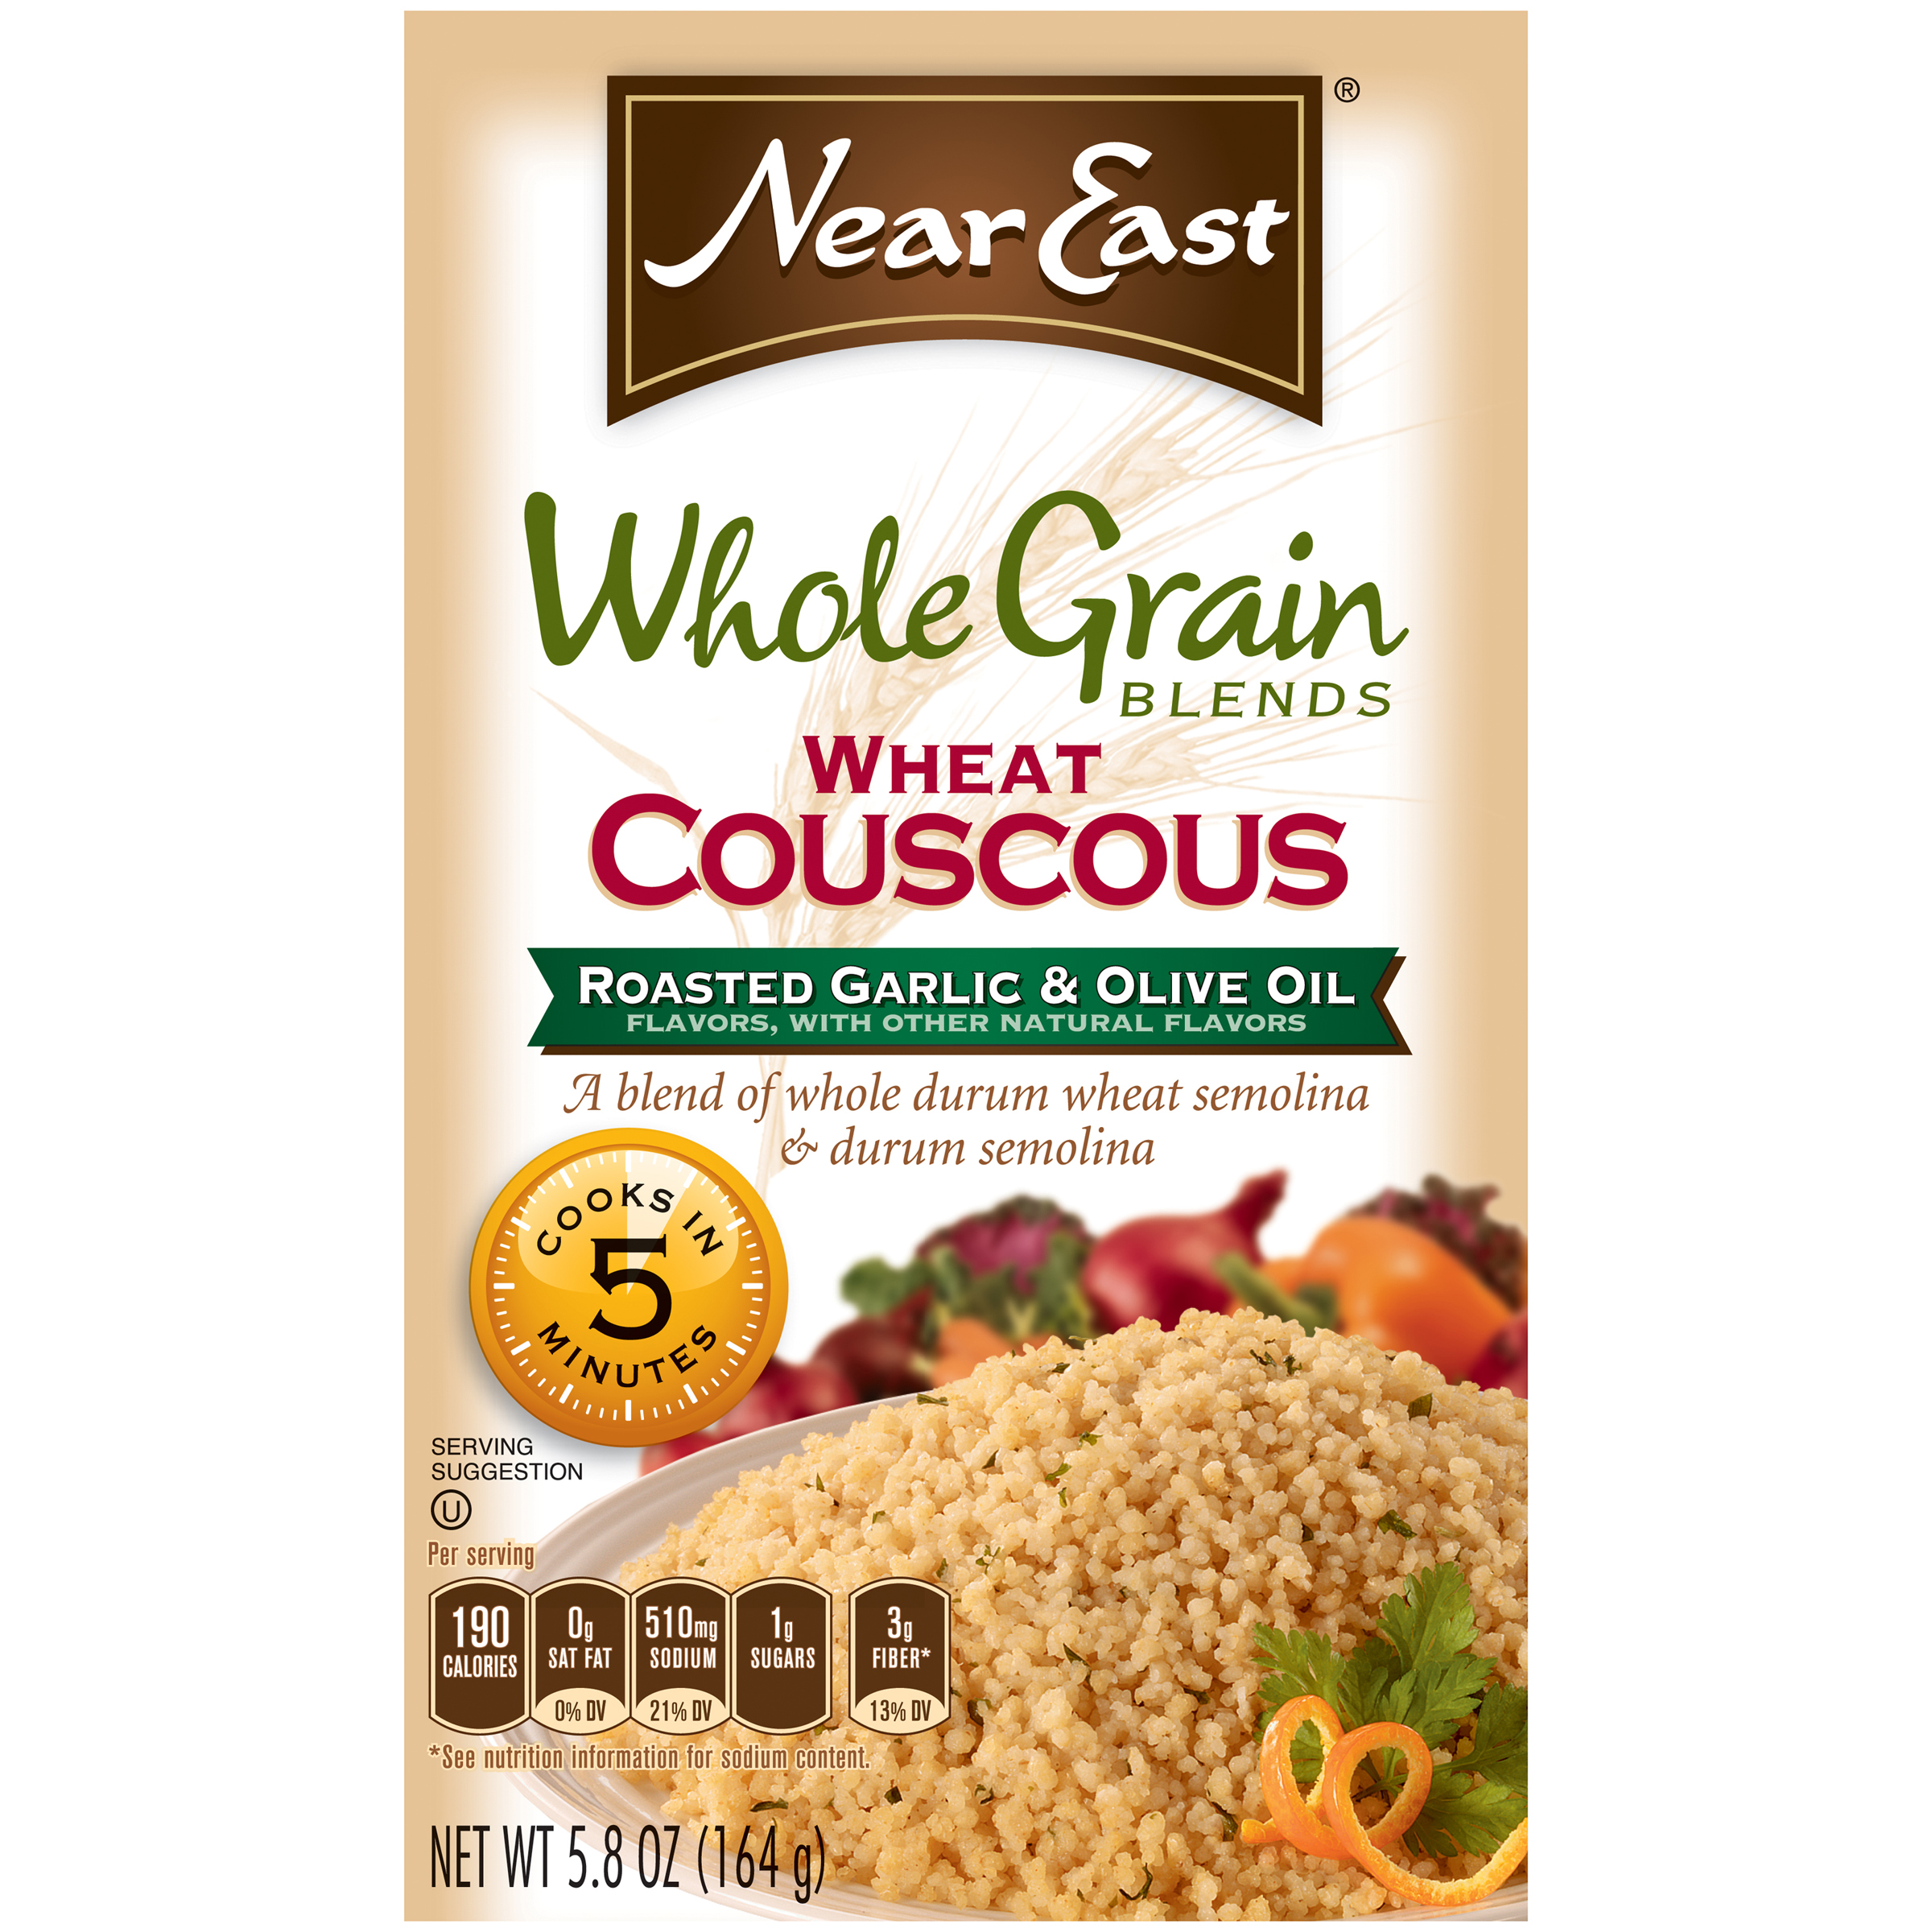 What is the nutritional value of couscous?